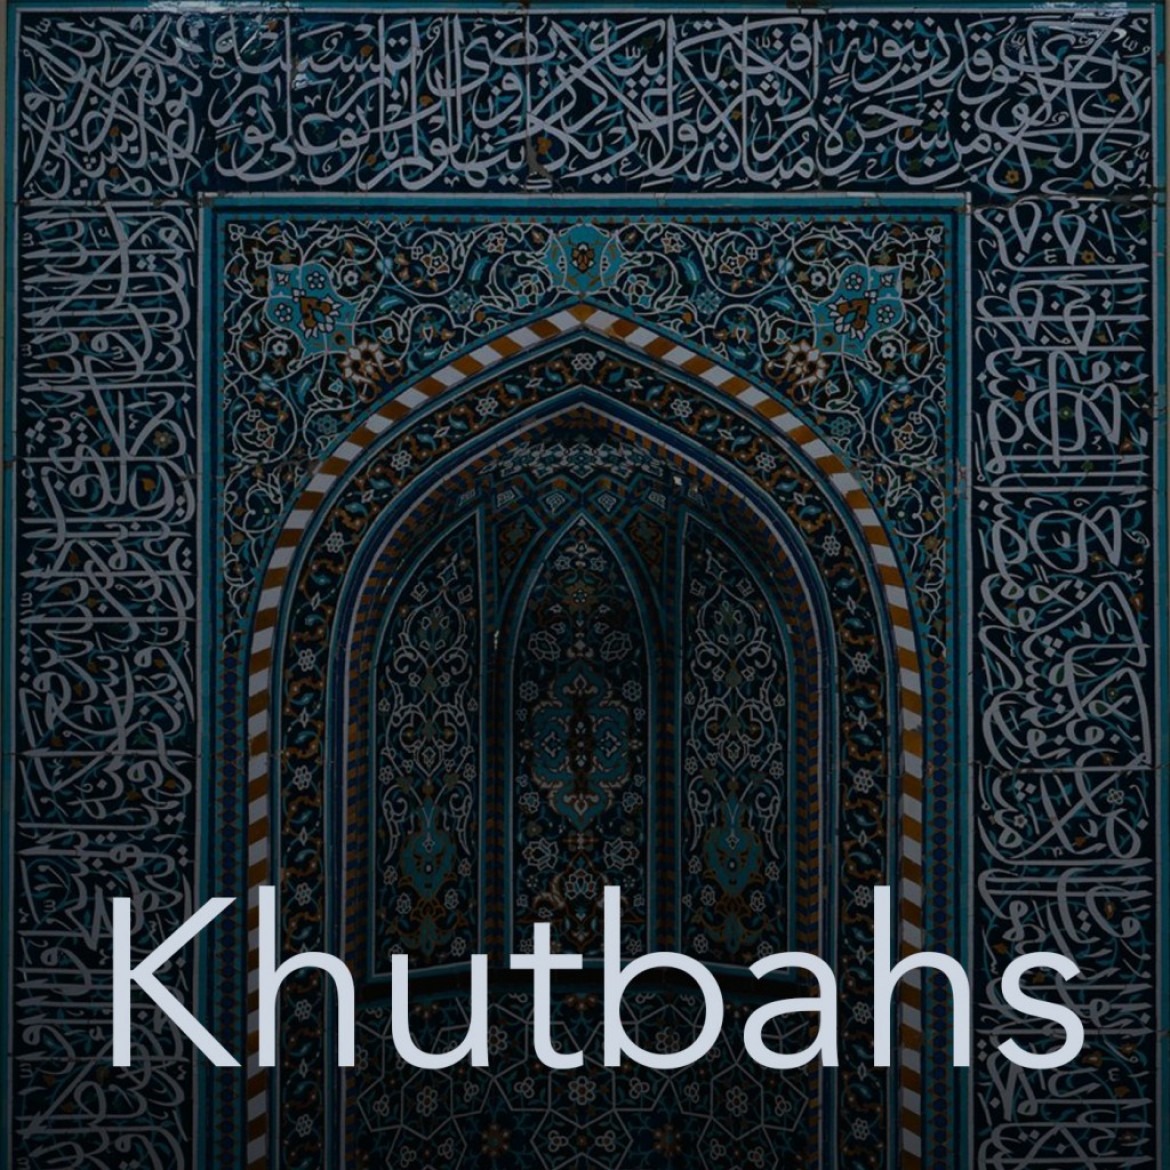 Khutbah: A Call to Faith and Action on inauguration day